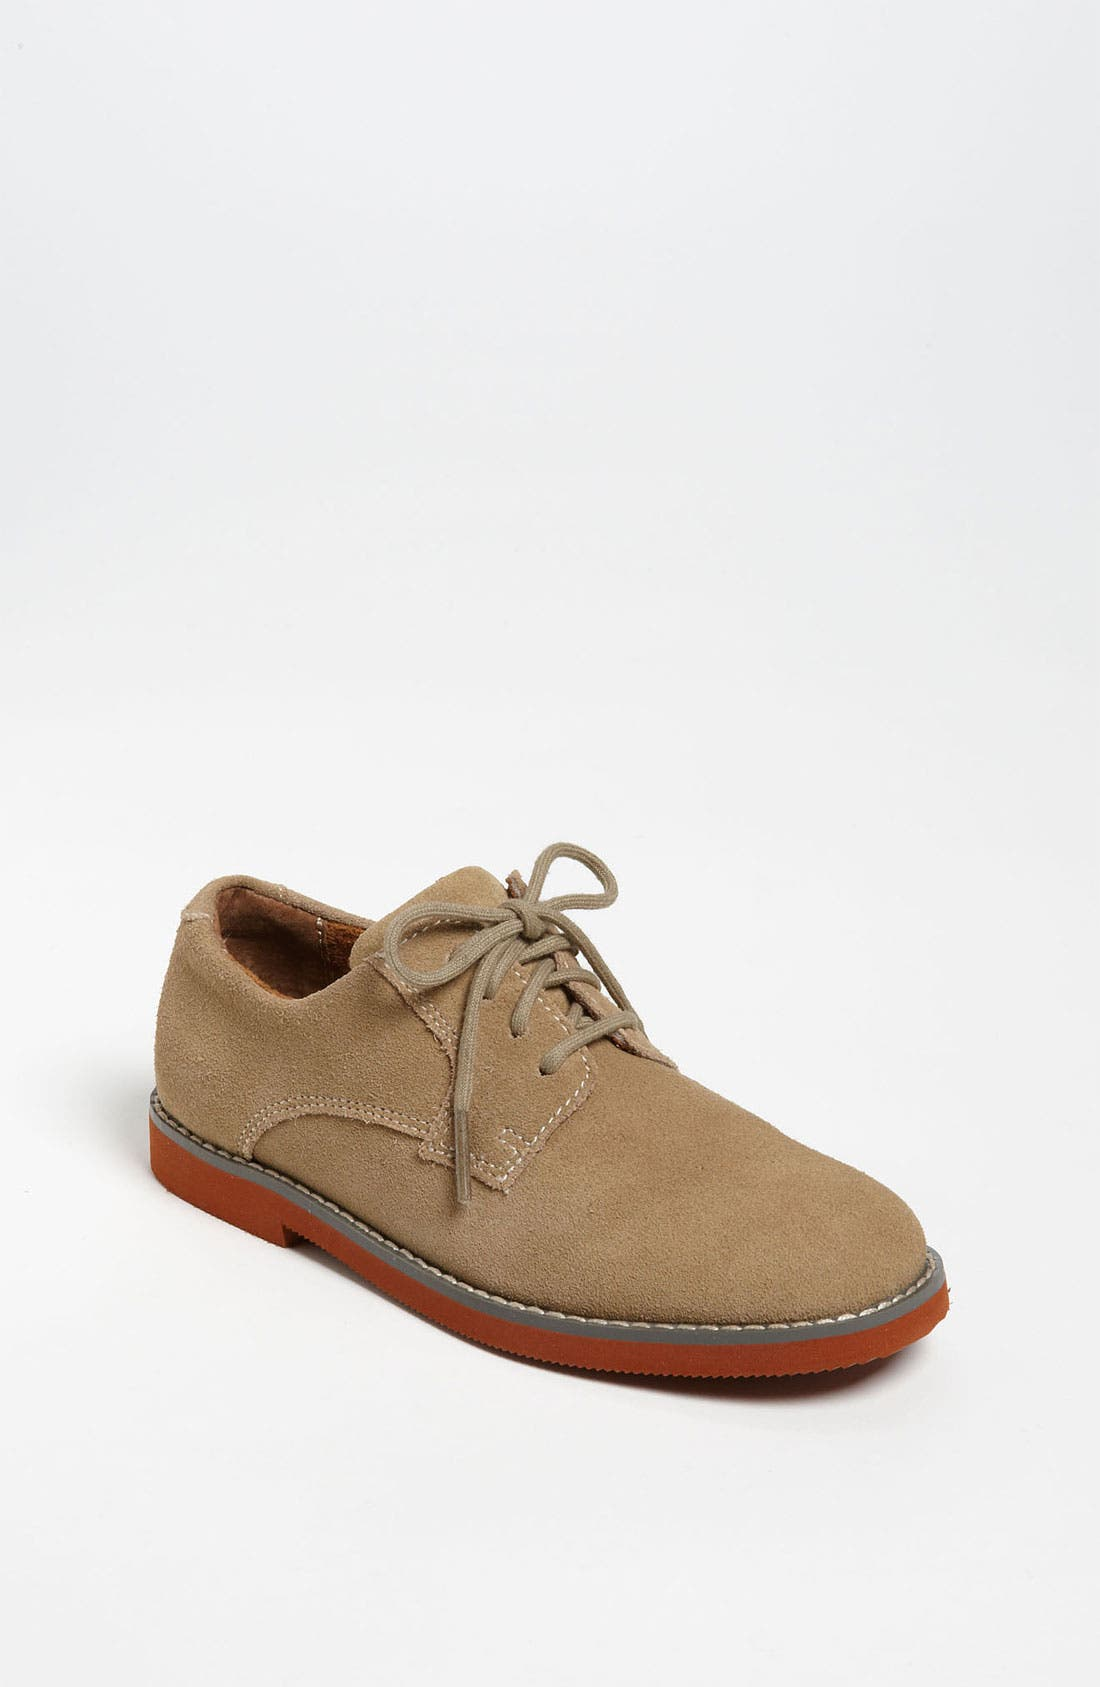 Florsheim 'Kearny' Oxford (Toddler, Little Kid & Big Kid)